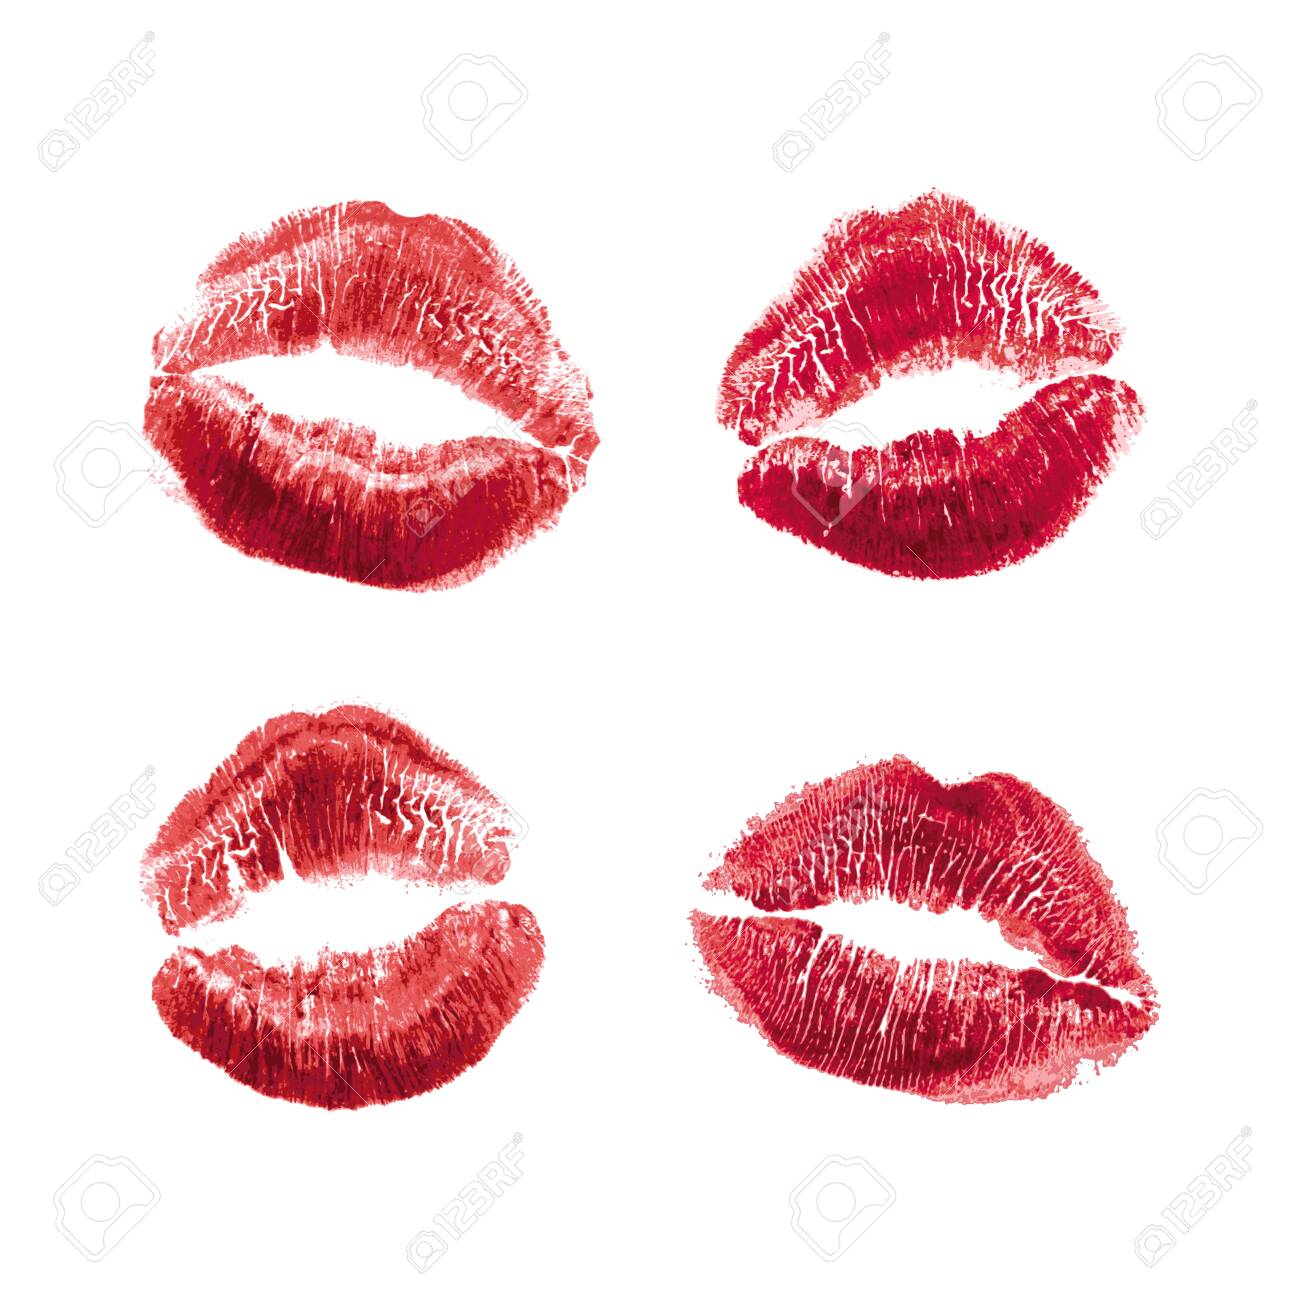 Vector set of realistic illustration womans girl red lipstick kiss mark. Isolated on white background. Valentines day icon, world kiss day. sign, symbol, clip art for design. - 120975851